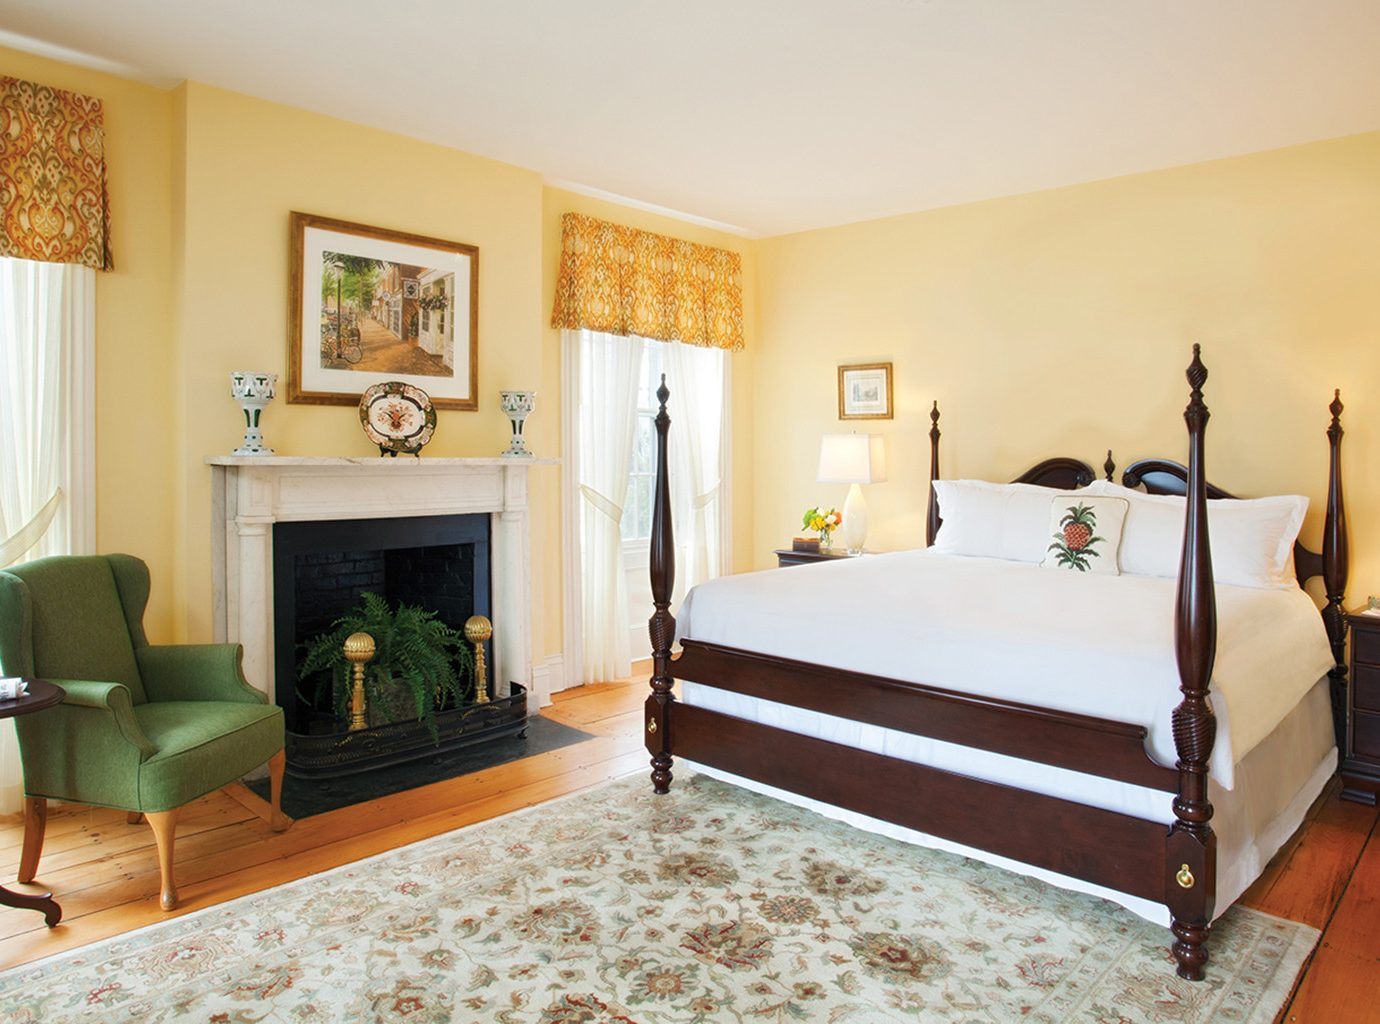 Bedroom at Jared Coffin House in Nantucket